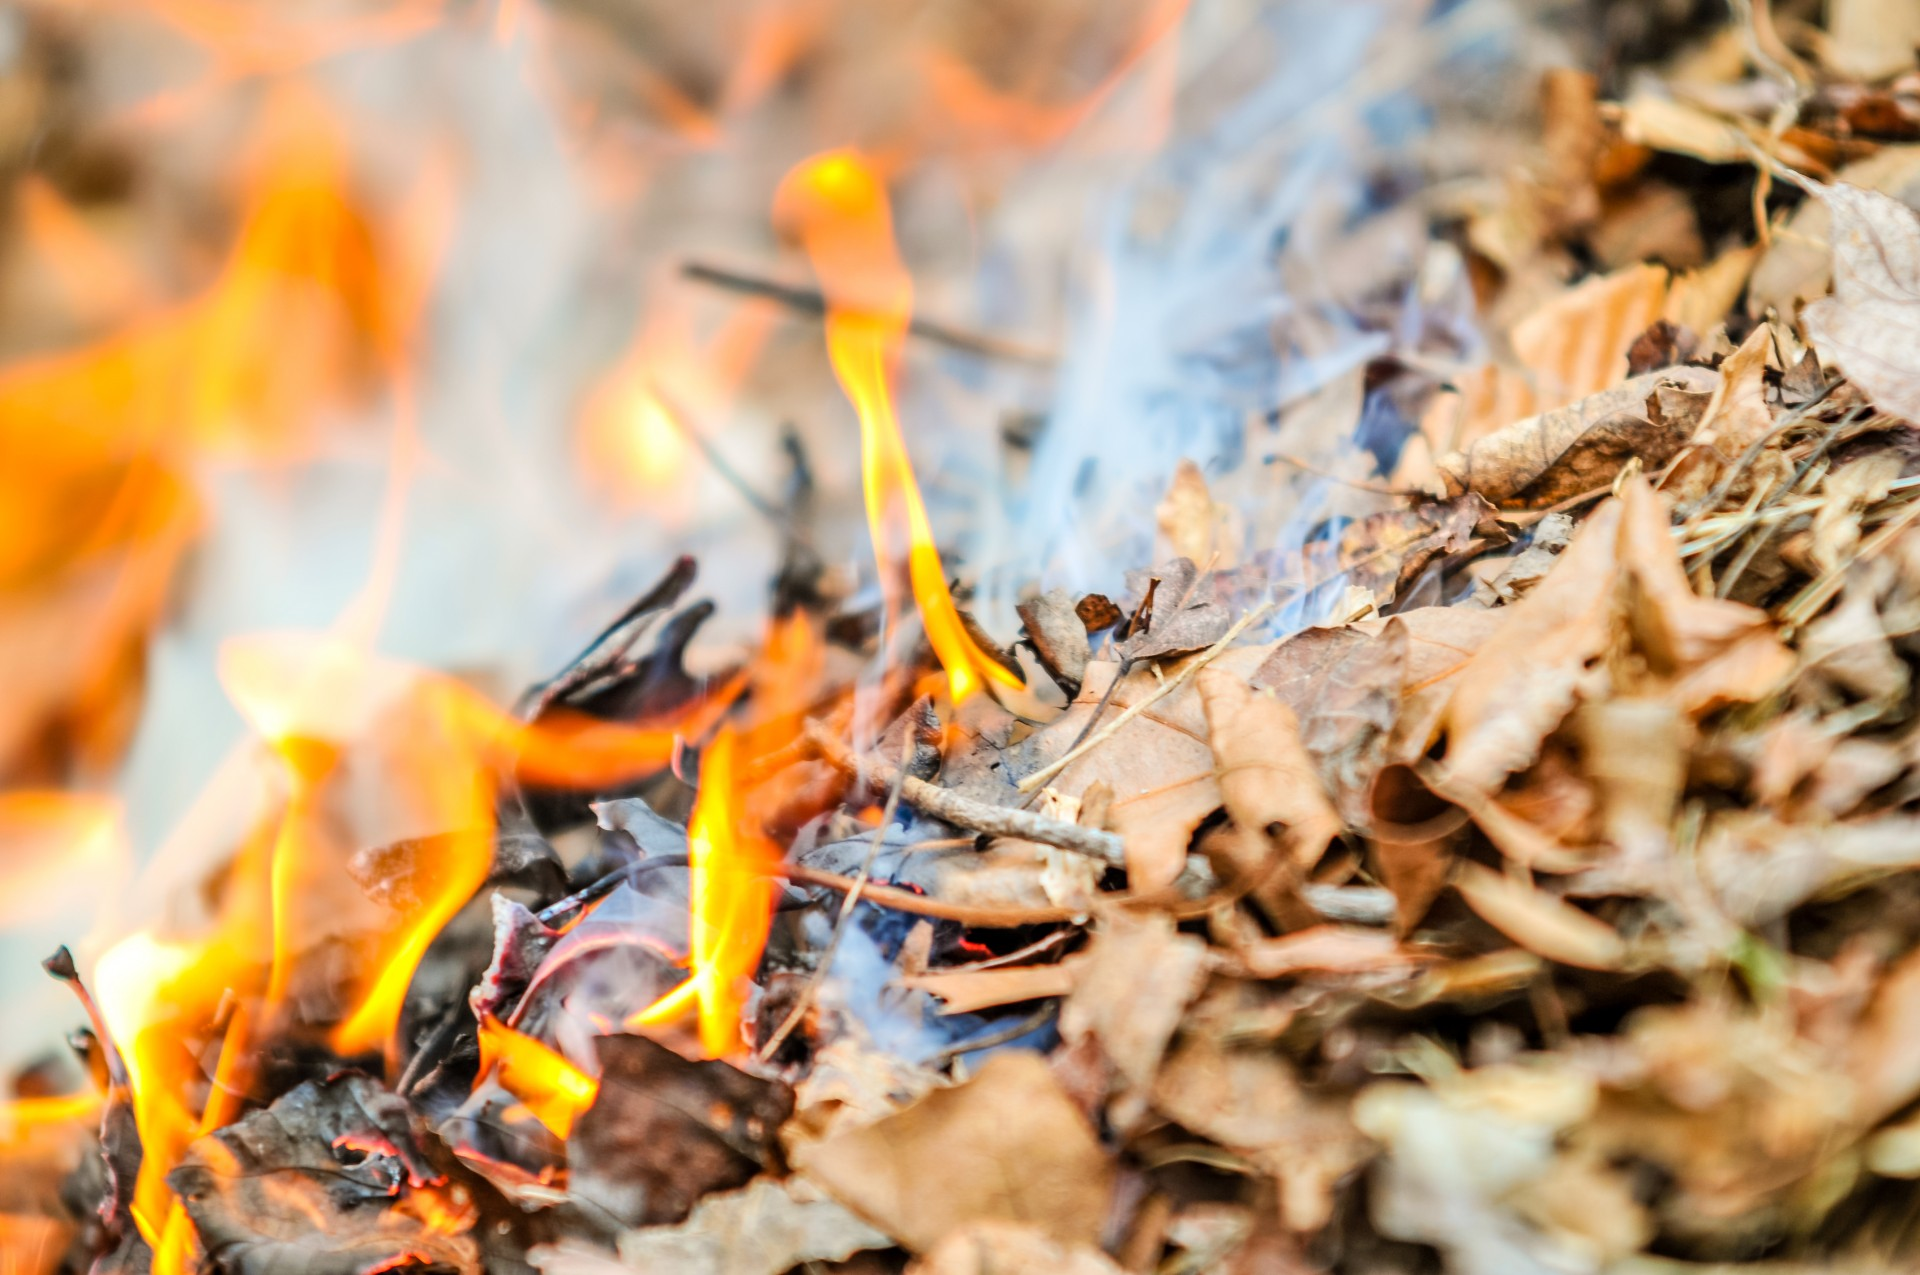 Mt. Vernon Fire Chief with some reminders heading into spring cleanup and leaf burning season